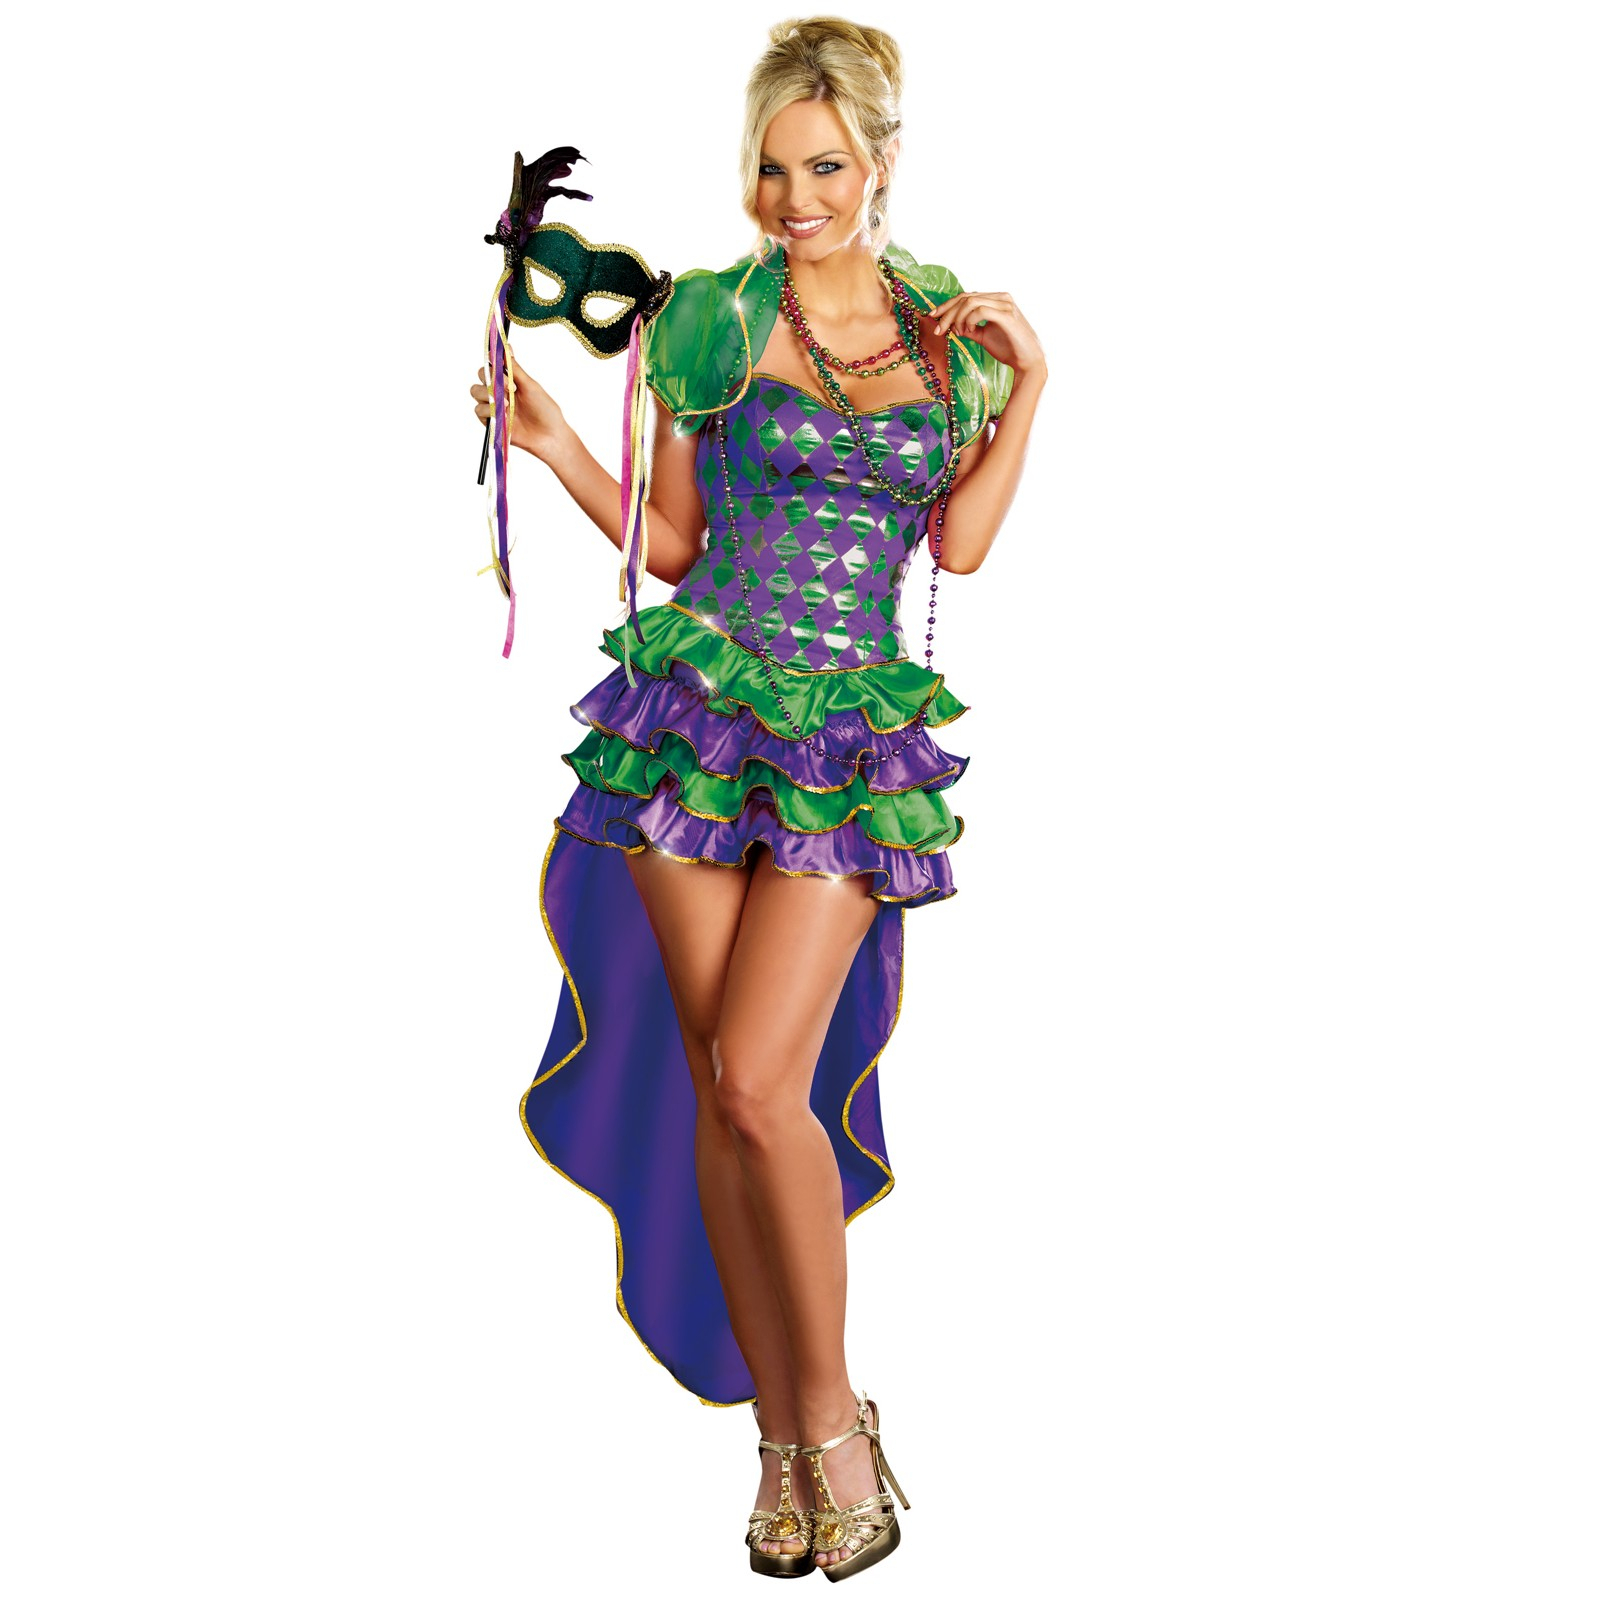 10 Fashionable Mardi Gras Costume Ideas For Women 2013 sexiest halloween costumes wholesale halloween costumes blog